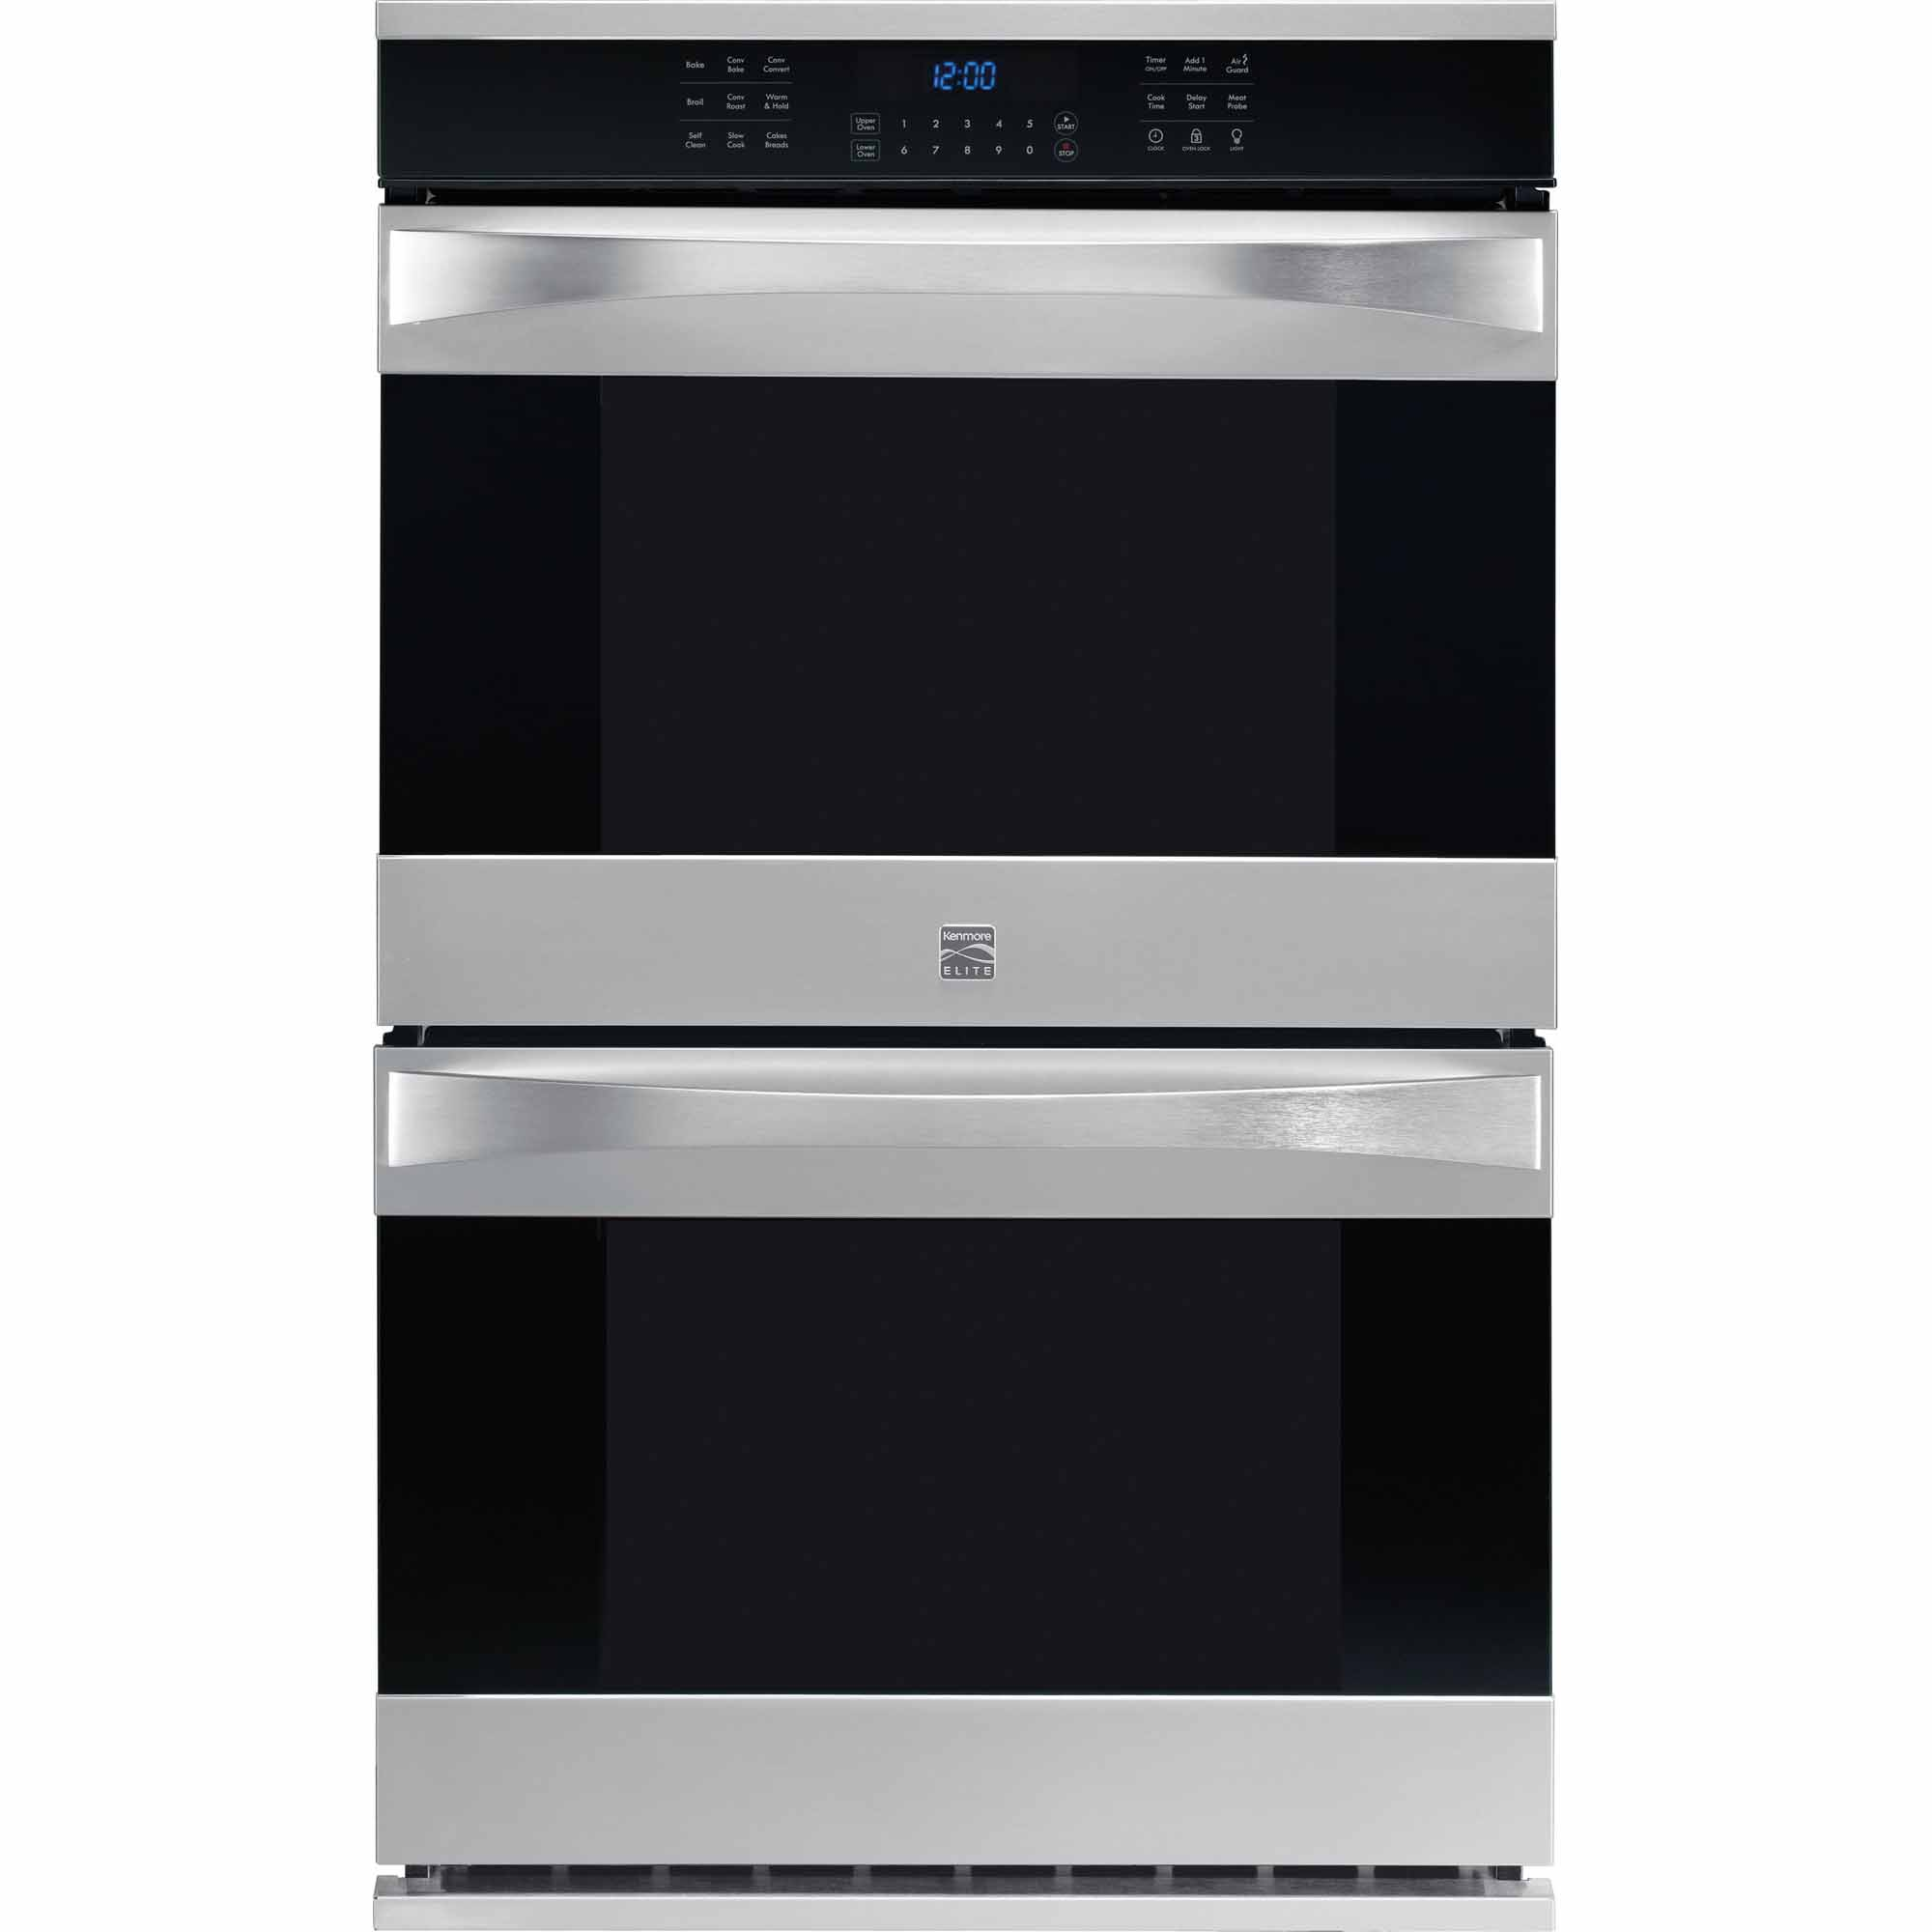 48473-30-Electric-Double-Wall-Oven-w-True-Convection%E2%84%A2-Stainless-Steel